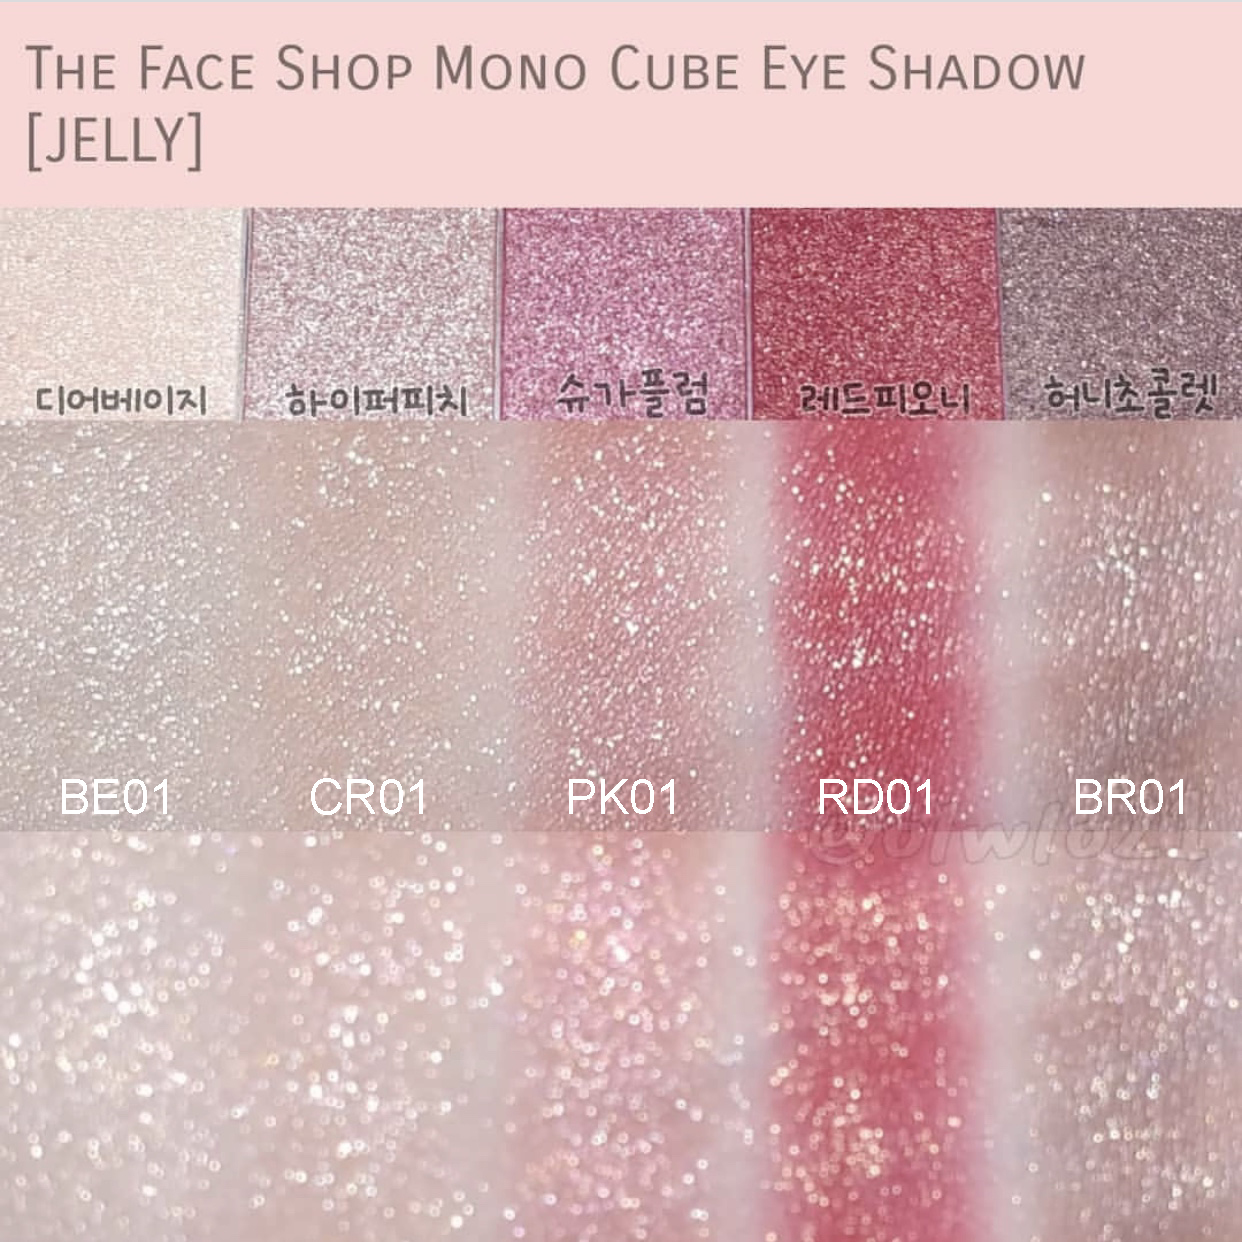 The Face Shop Mono Cube Eye Shadow (Jelly)